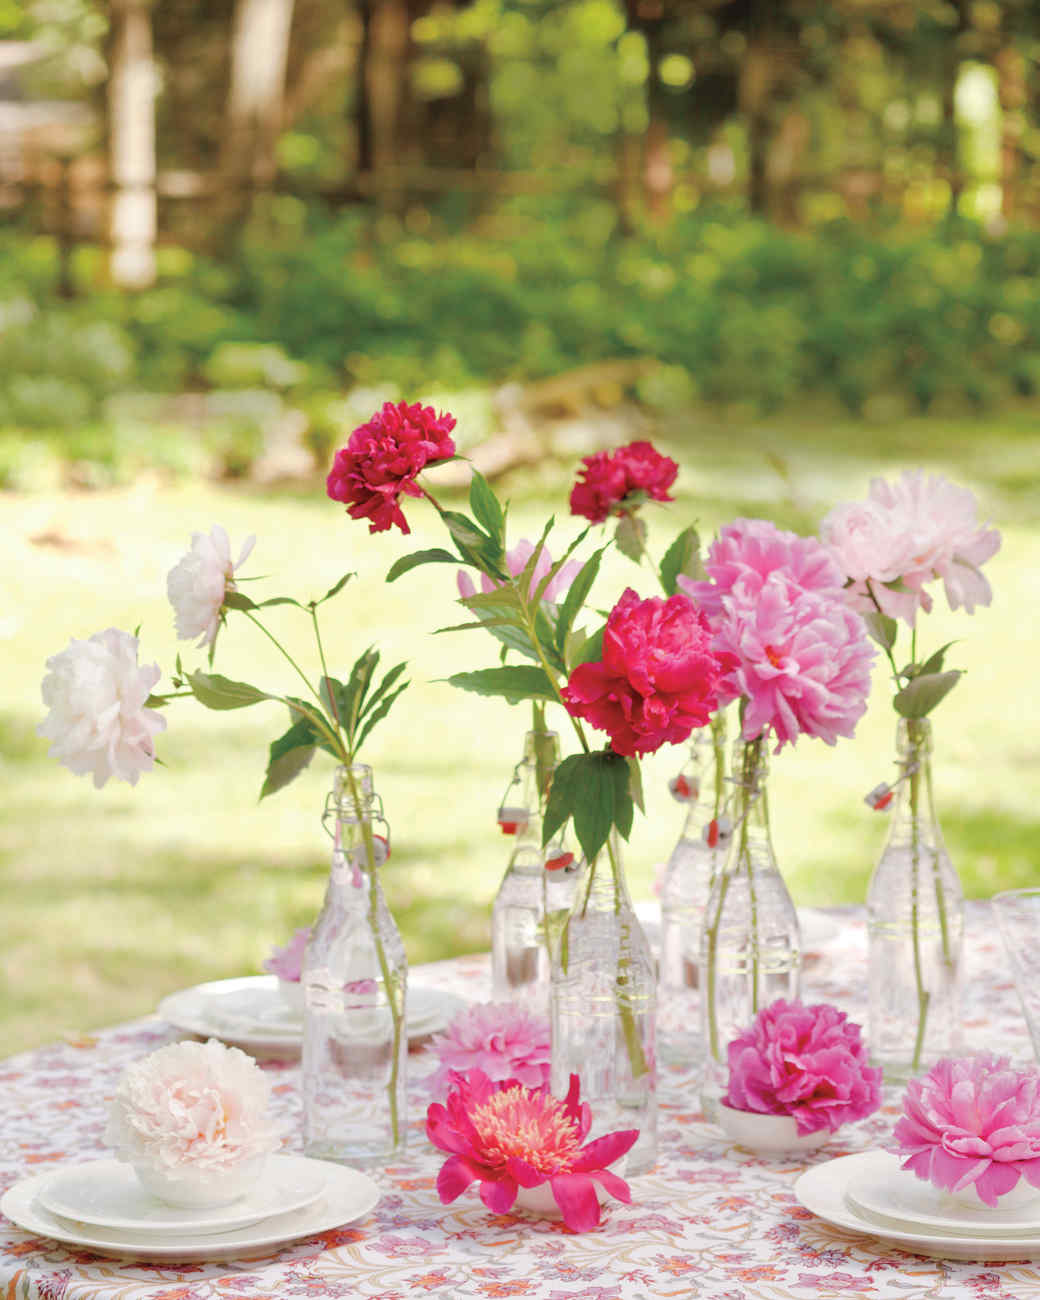 peonies-table-md107581.jpg